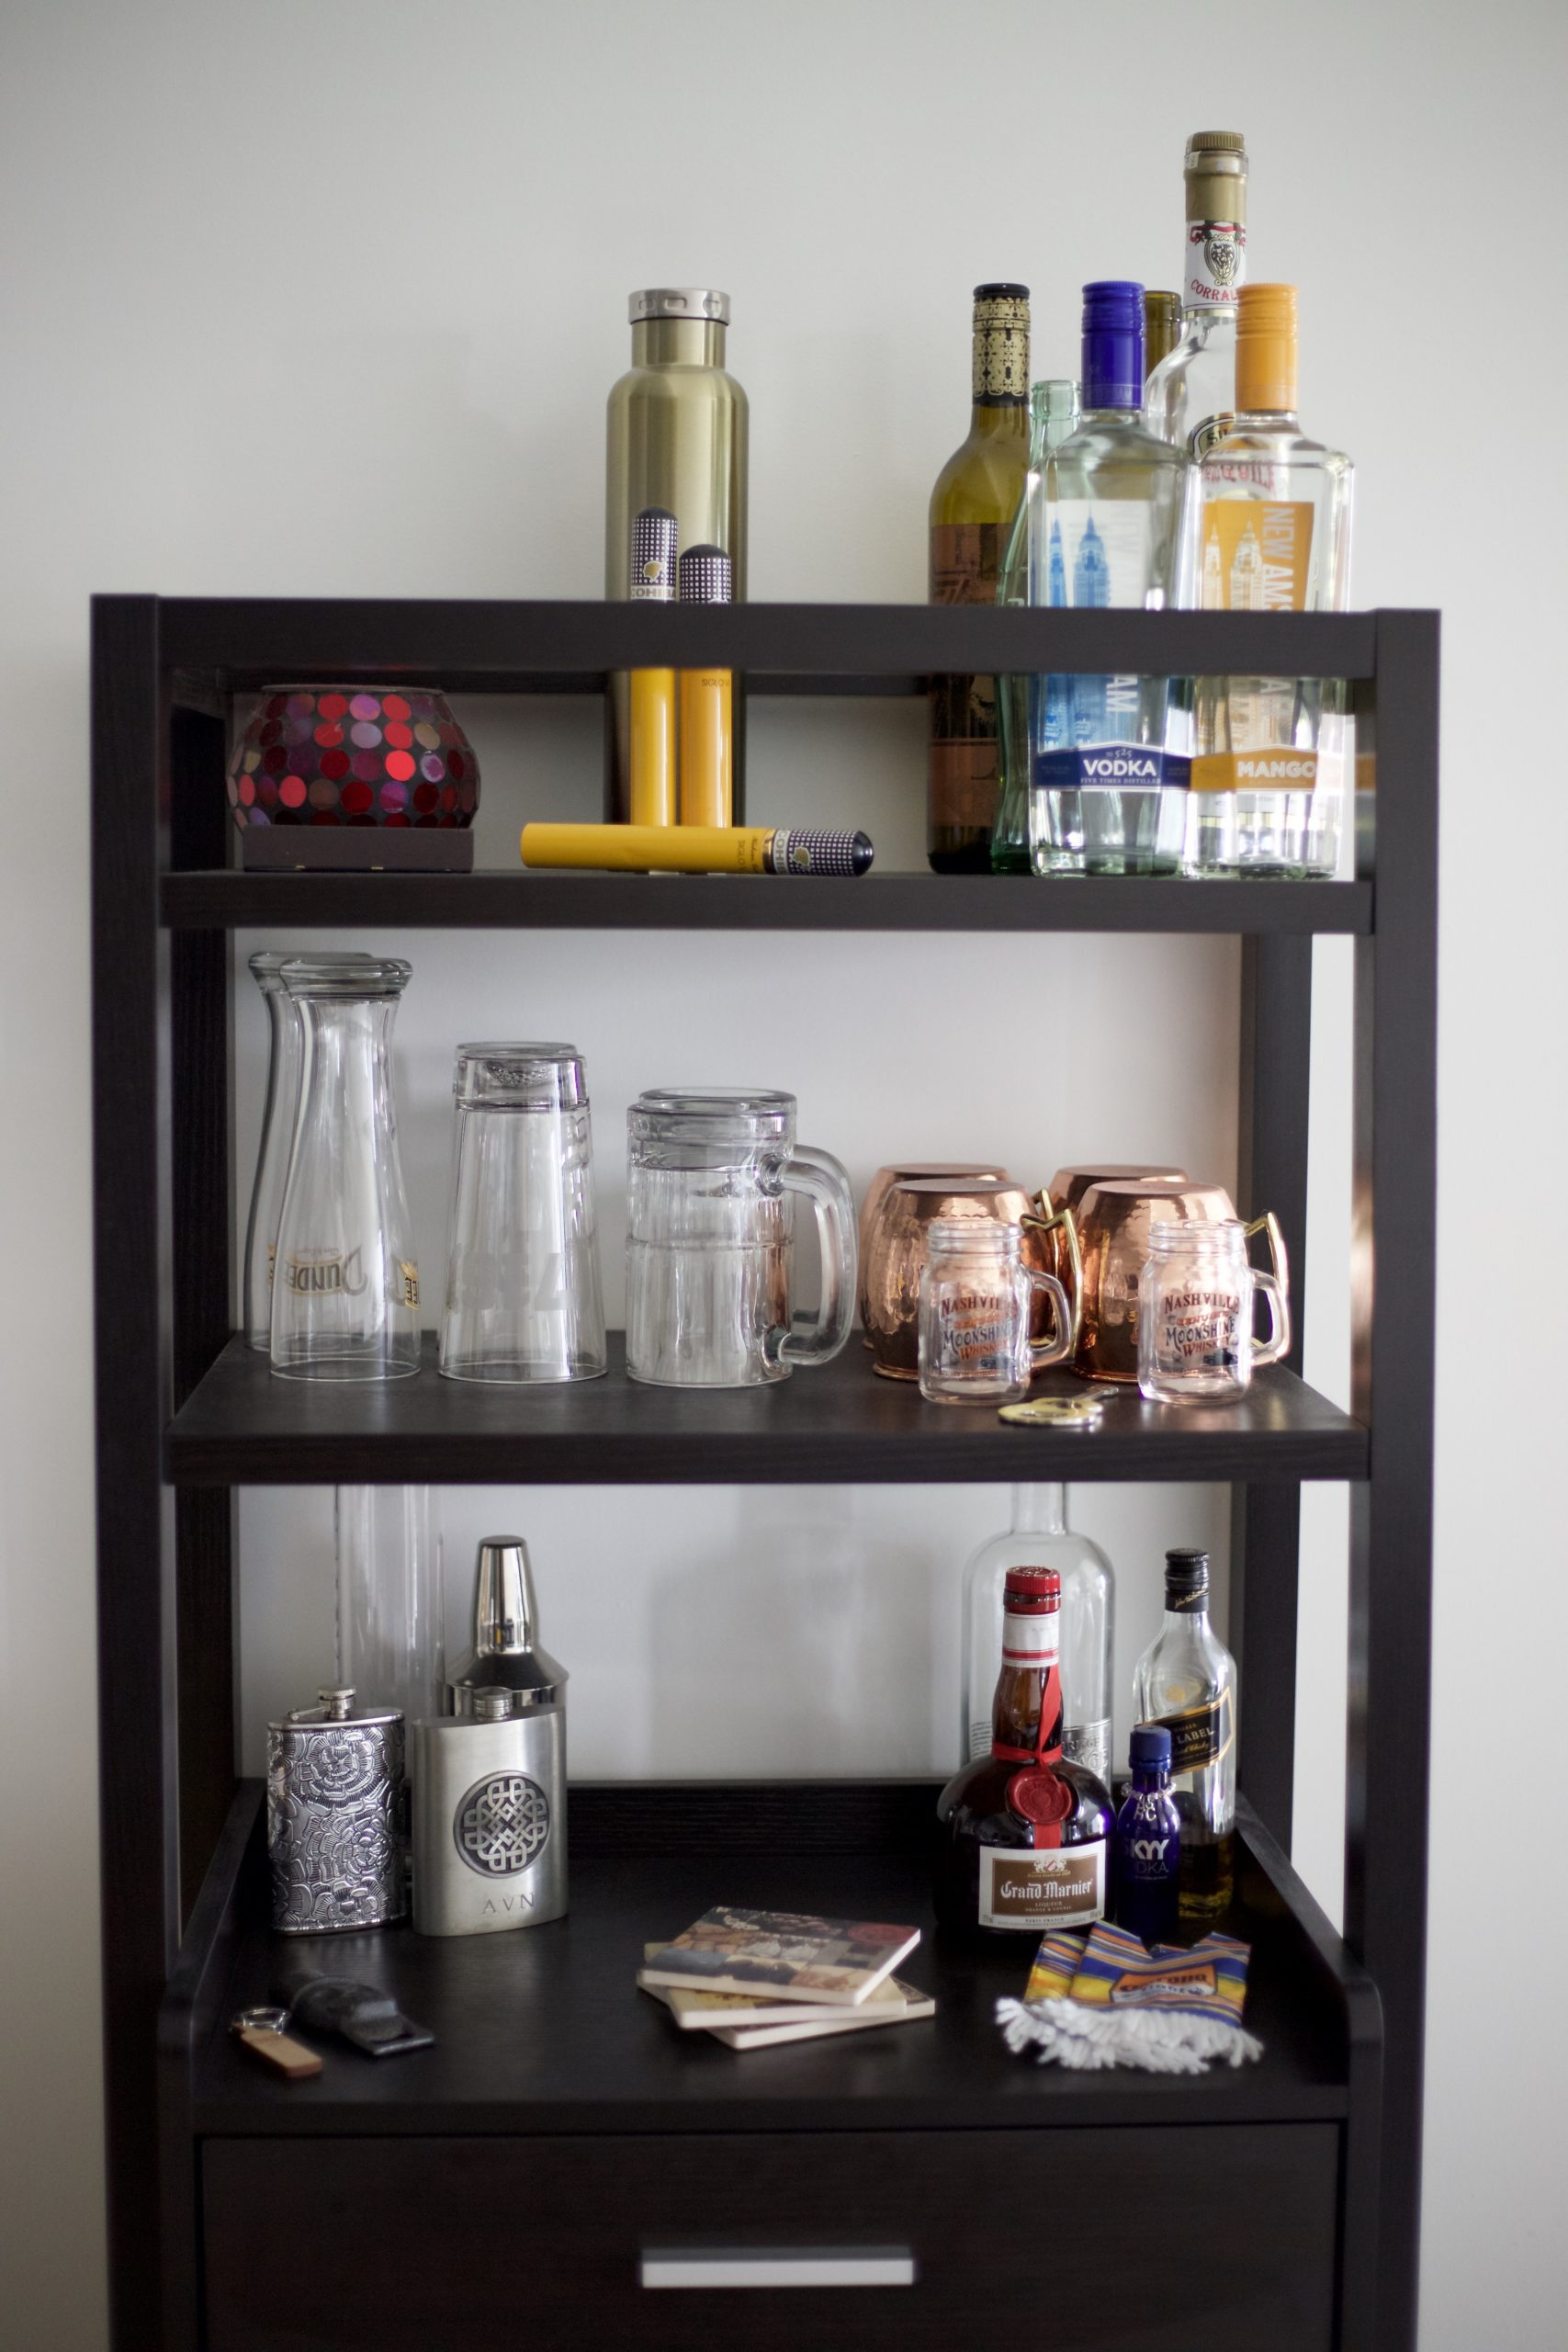 natural light apartment, apartment decor, hollywood apartments, amanda pamblanco, los angeles apartments, luxury apartments, interior design, sunset and vine apartments, how to style a bar cart